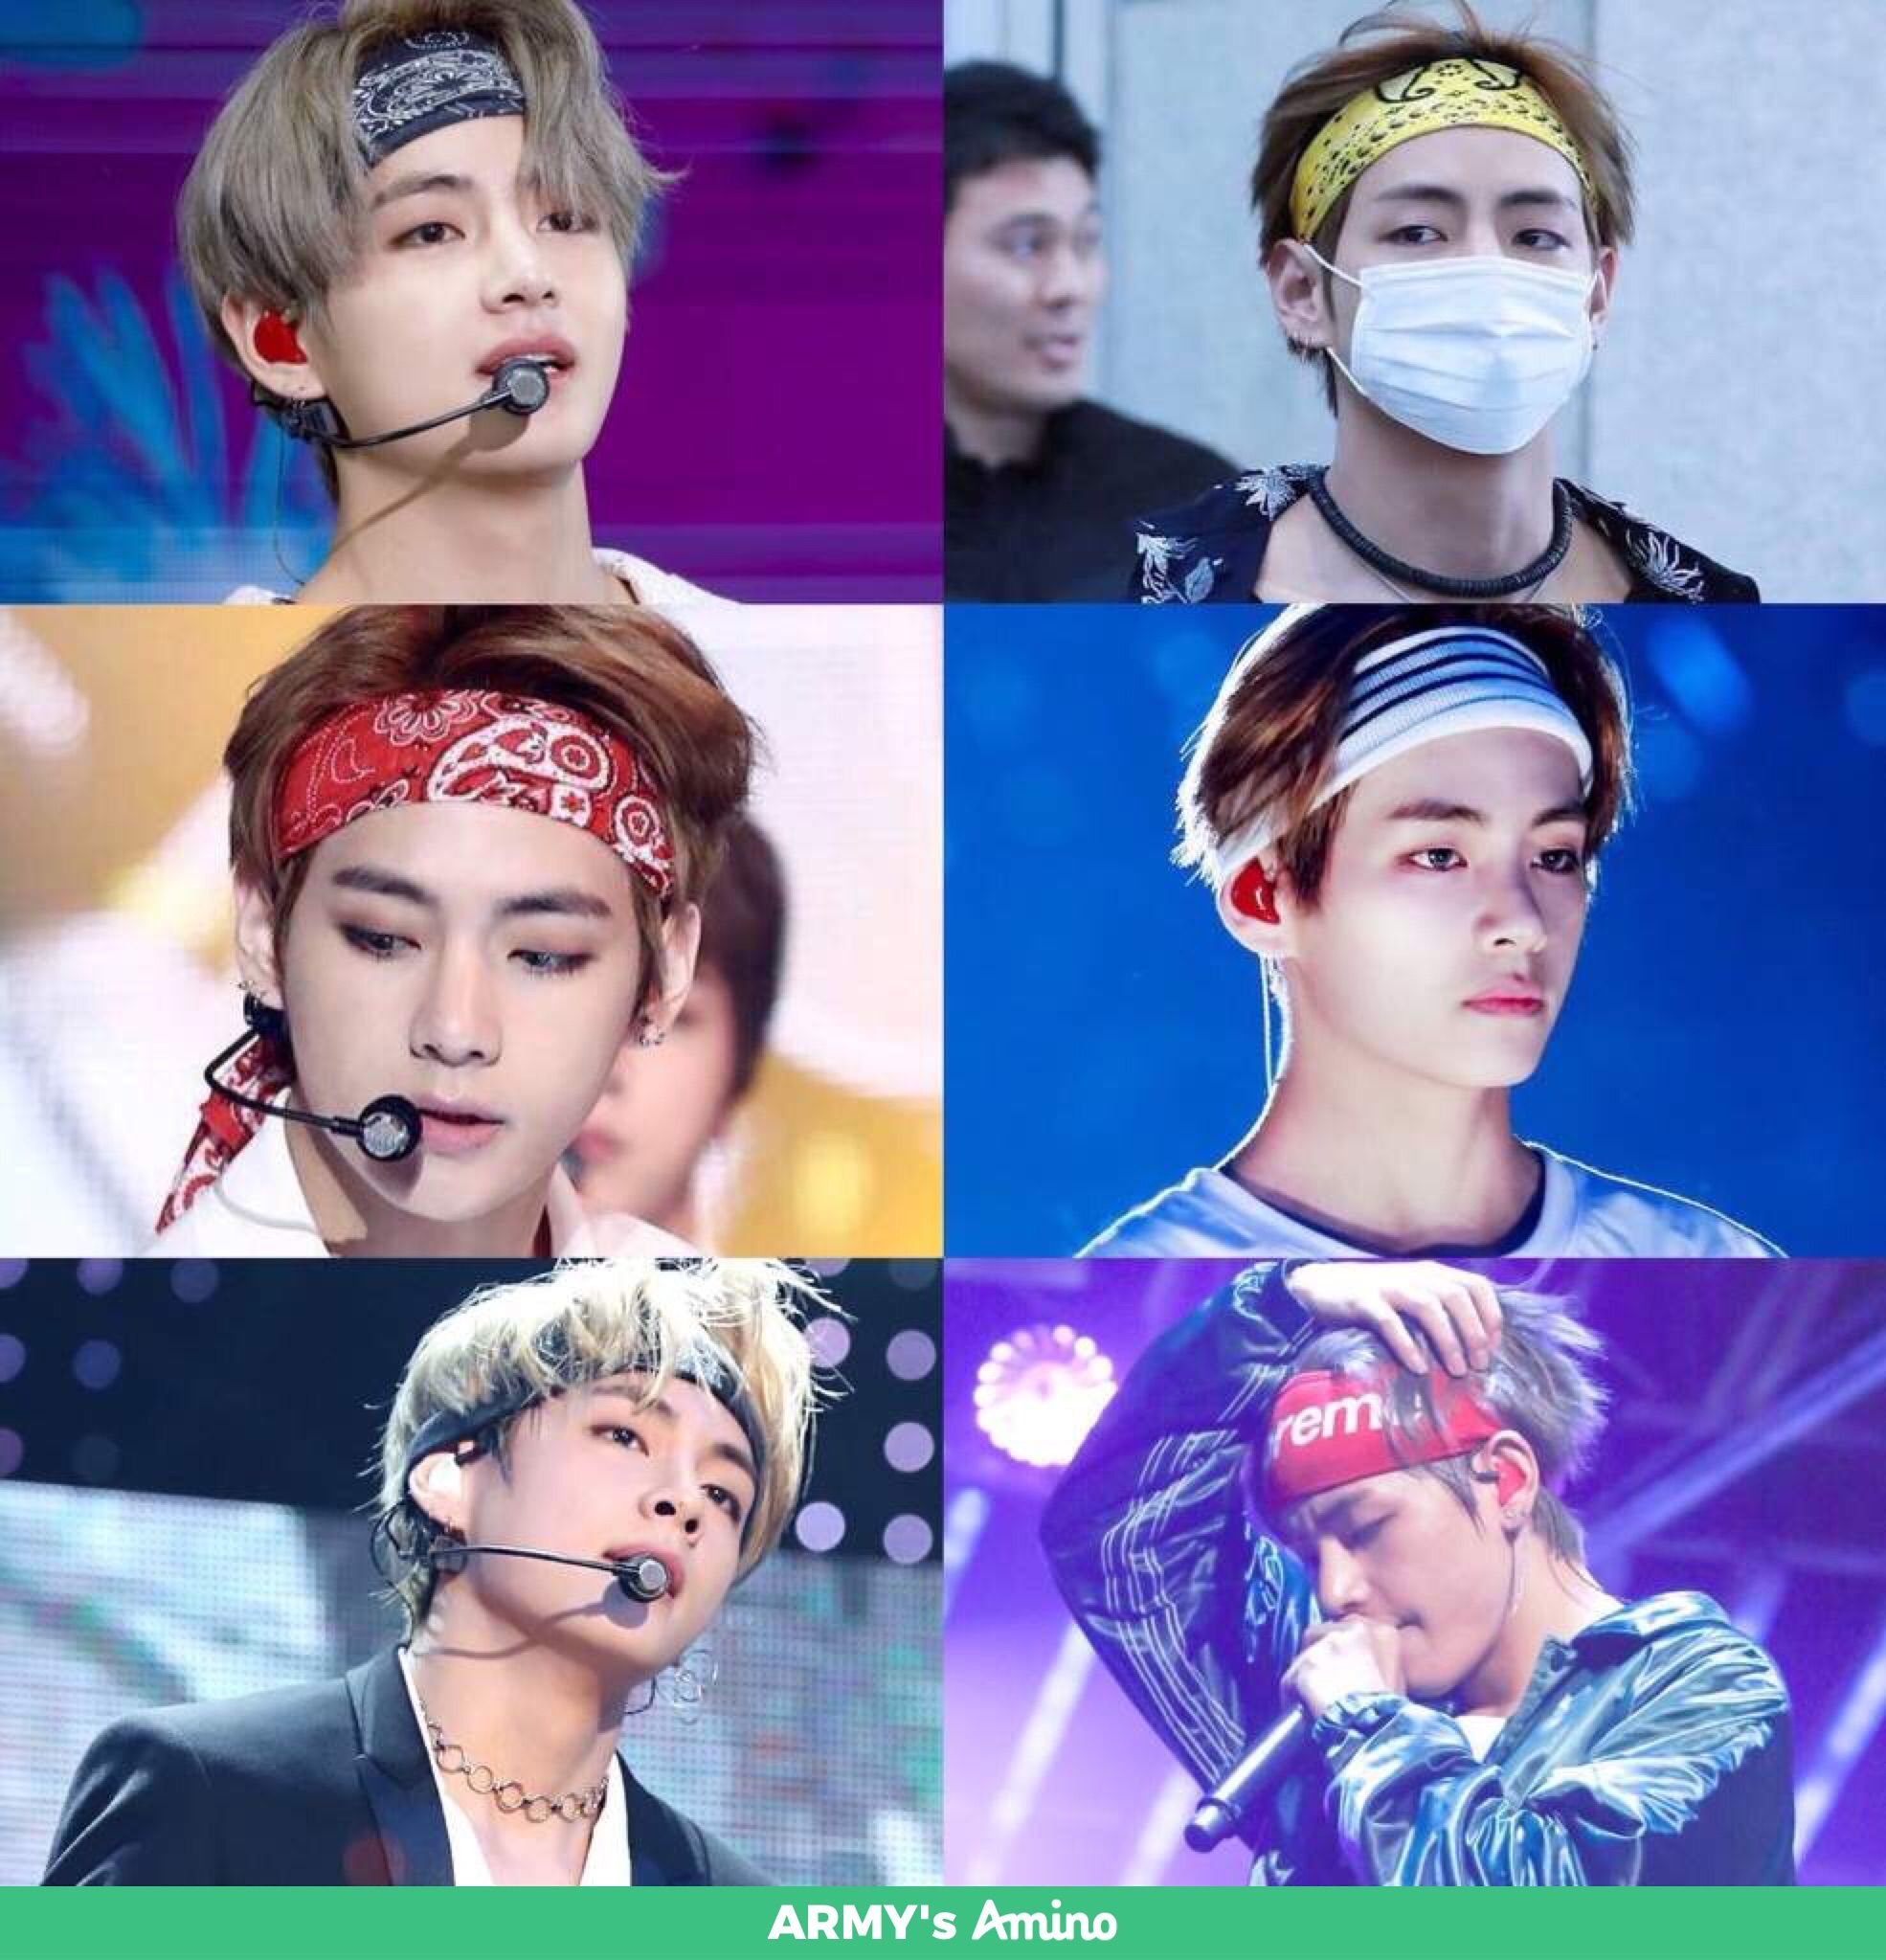 9bc53c8ee22e to the stylists that had the idea to make v wear a headband...may your life  be blessed